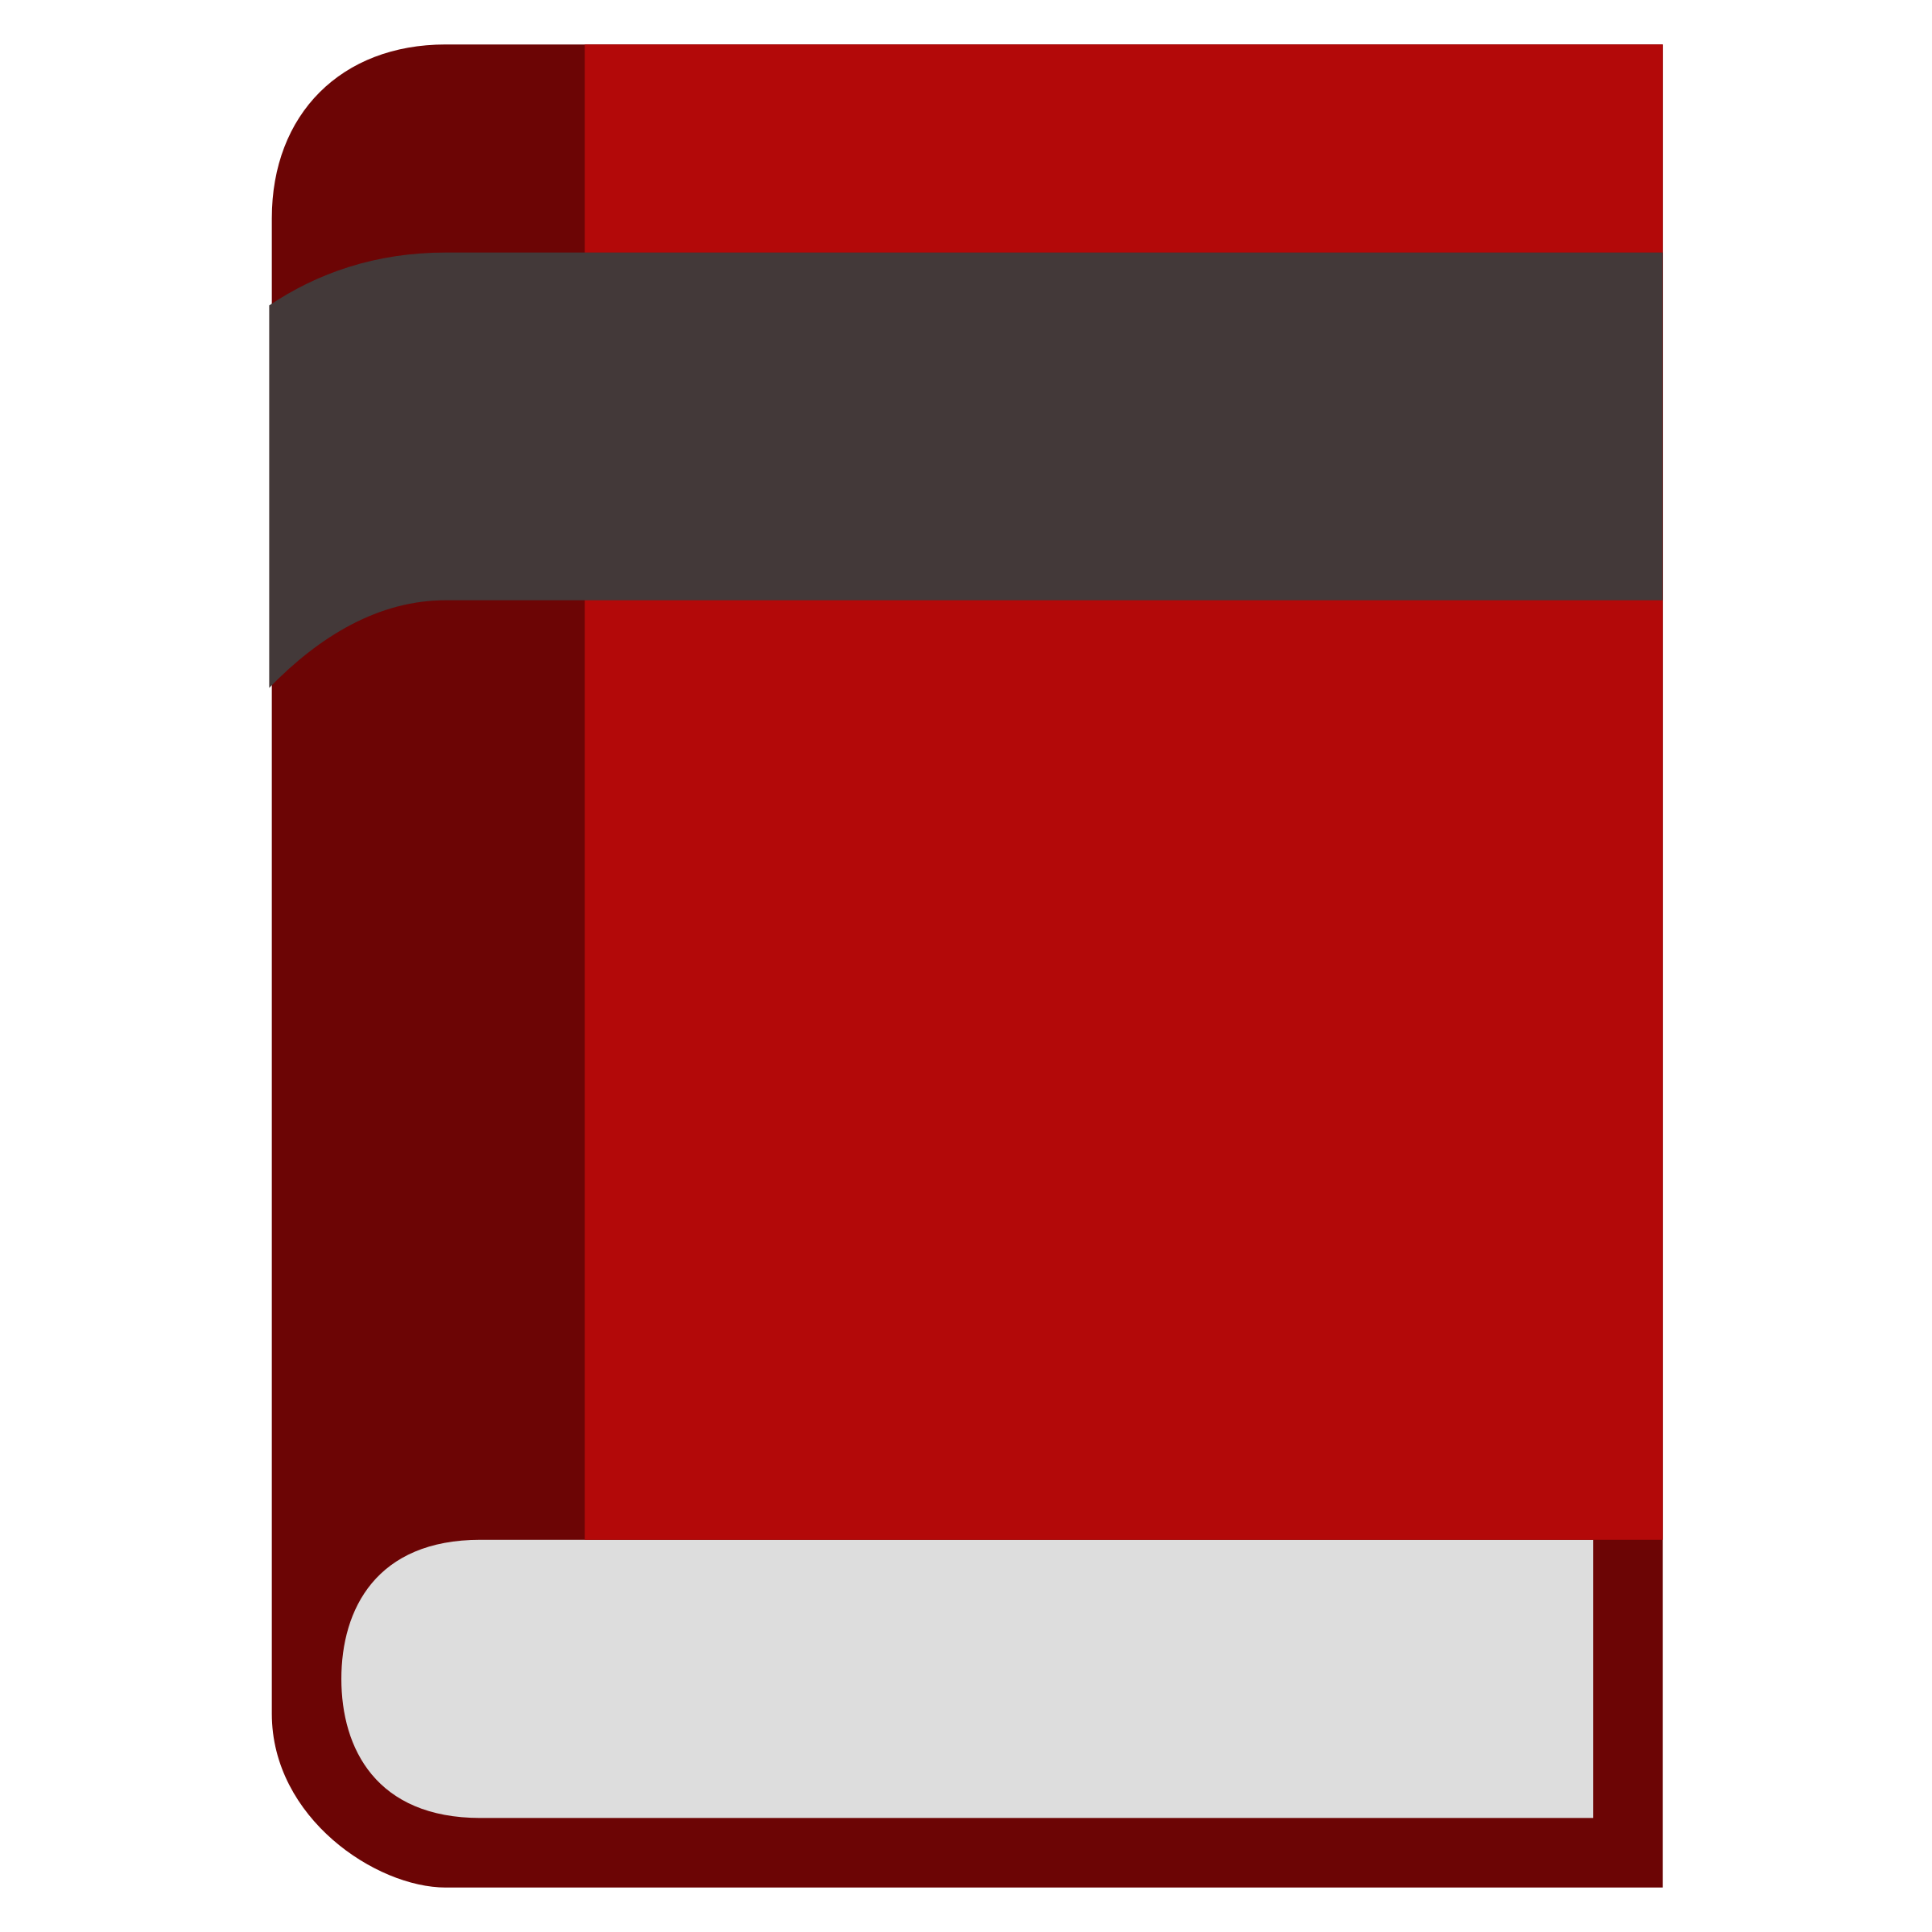 Clipart - Red Book